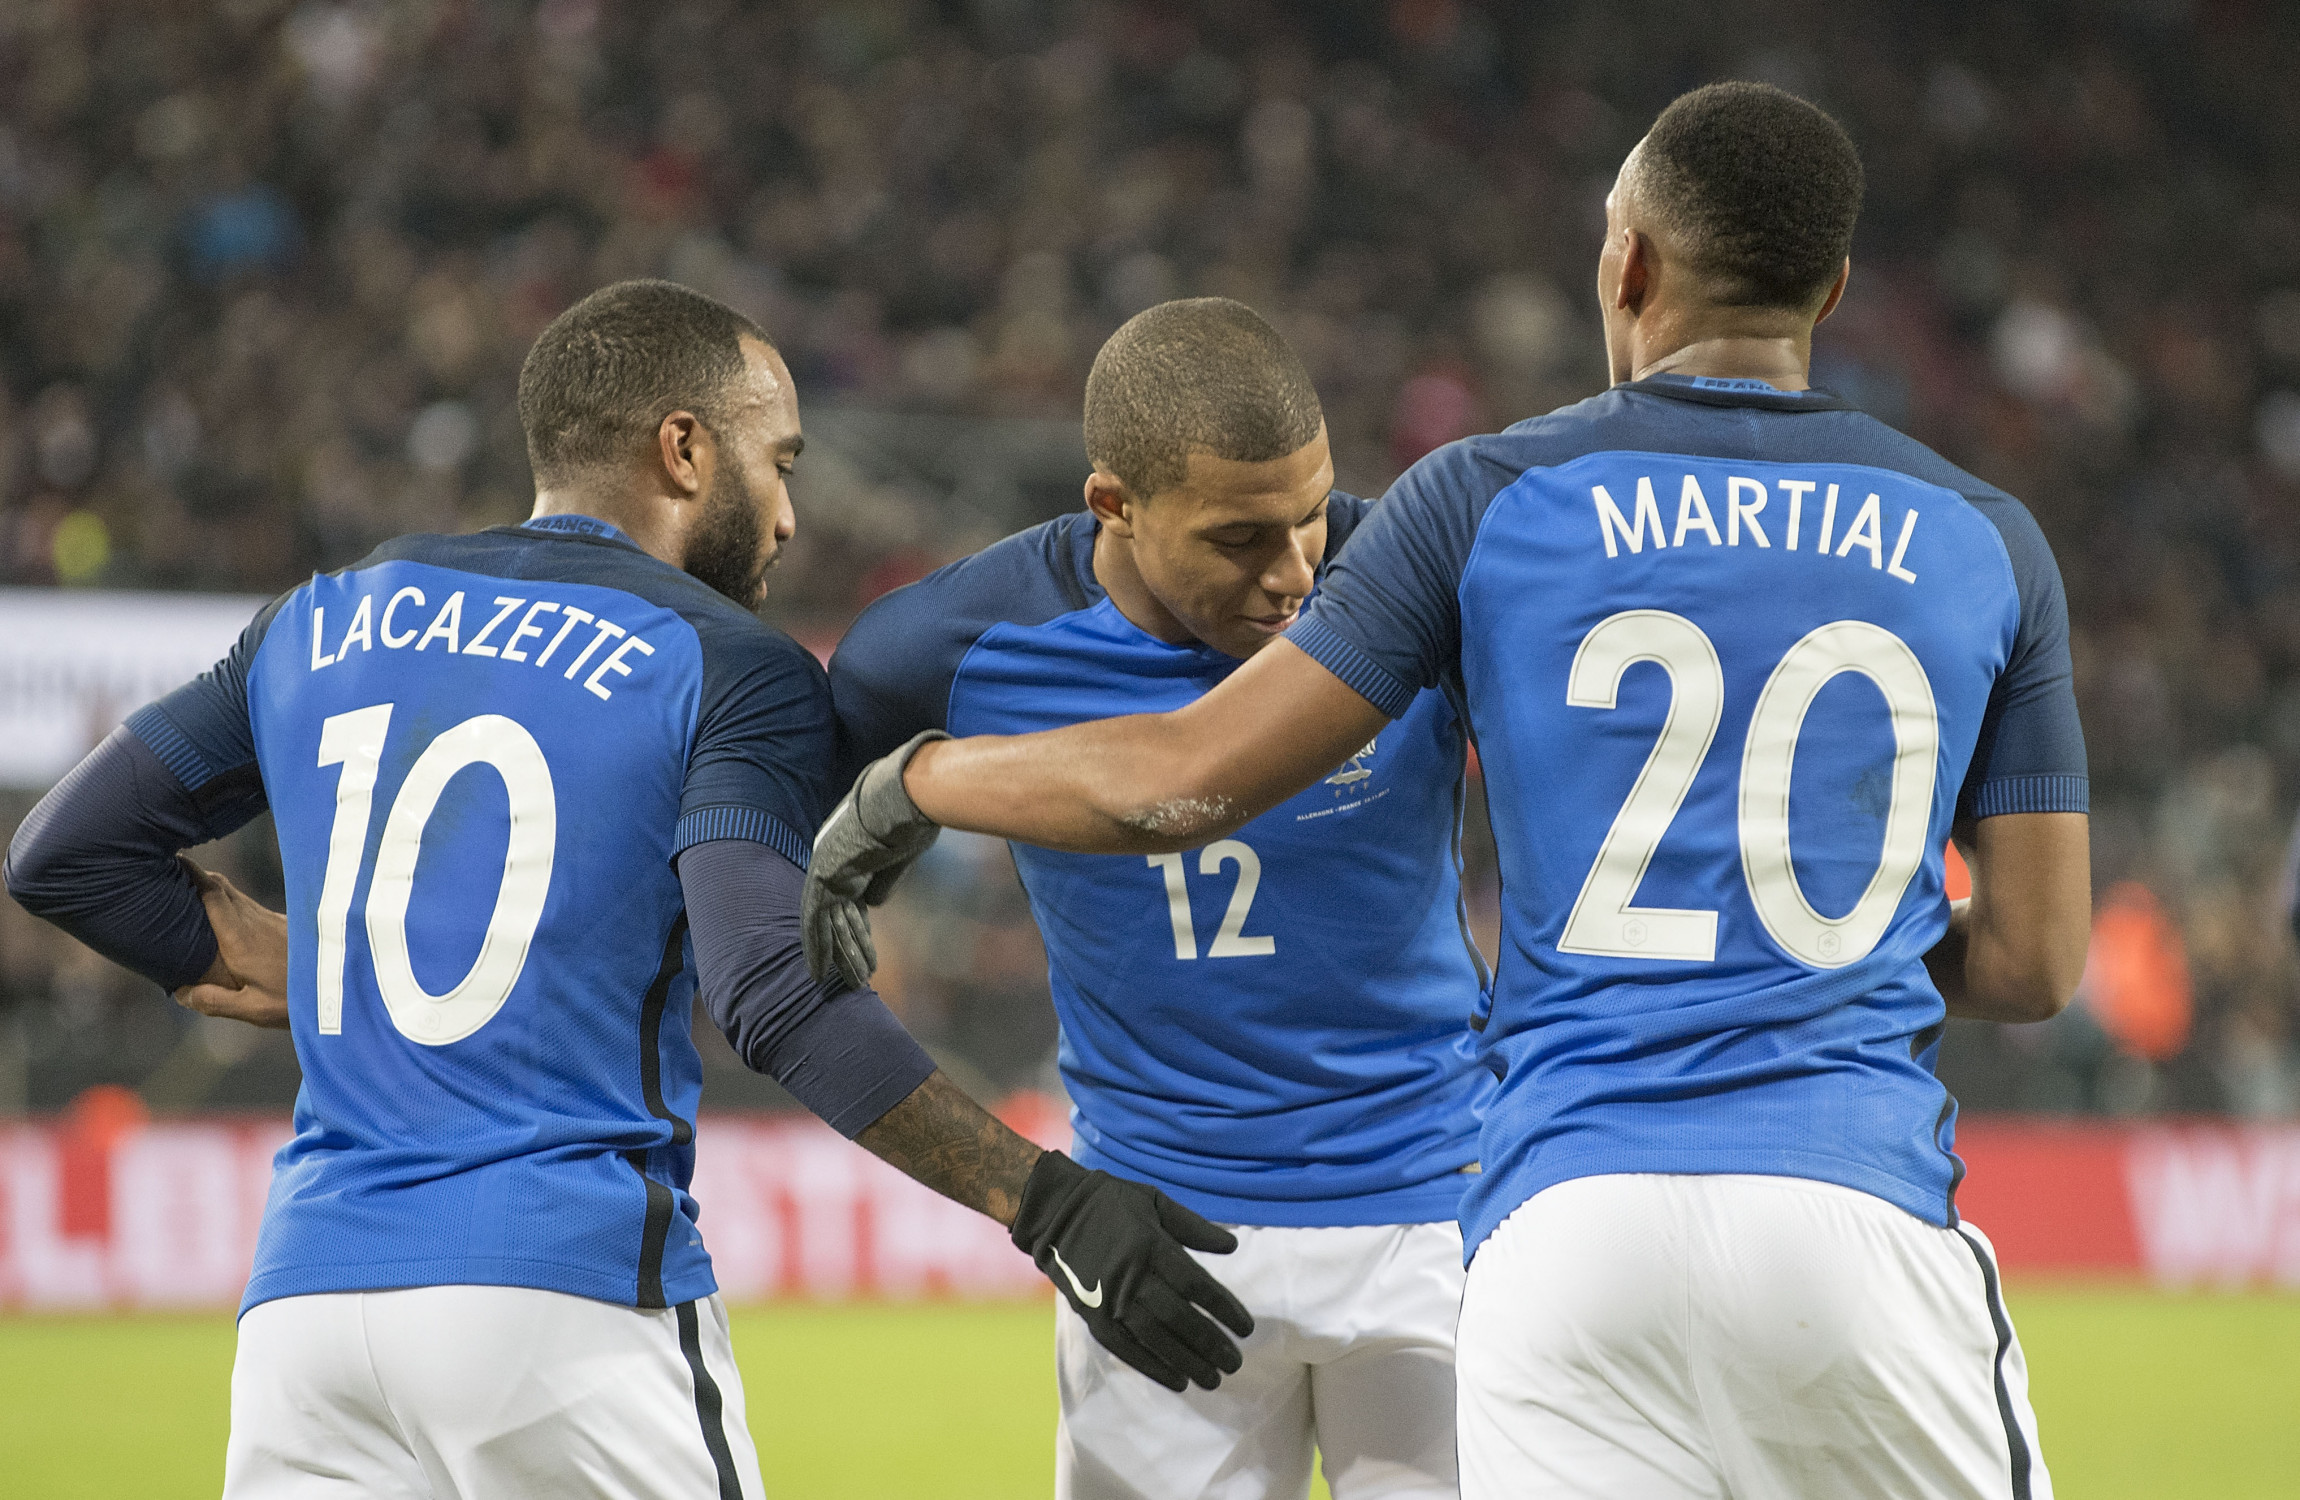 Stupid depth: Lacazette and Martial omitted from France squad